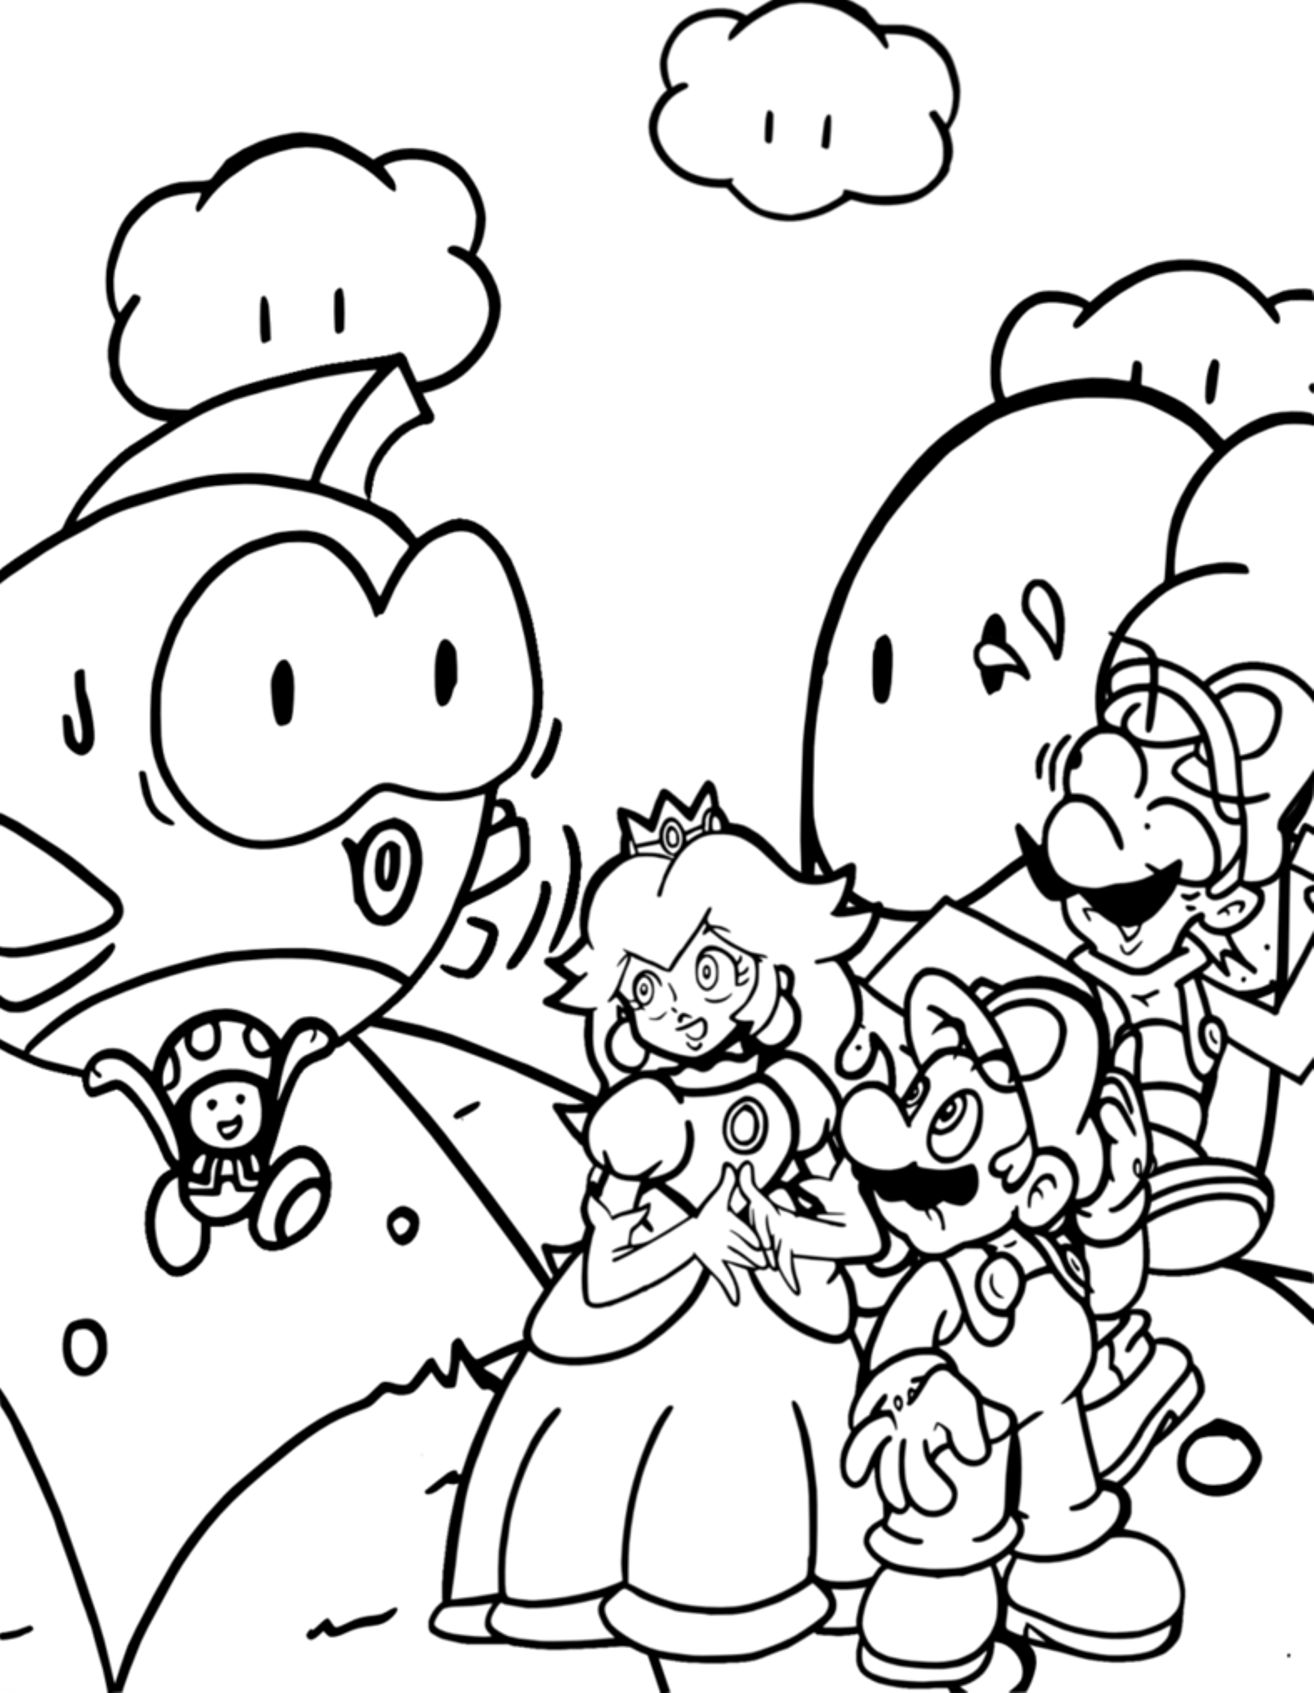 Mario Cartoon Coloring Pages at GetDrawings.com | Free for ...